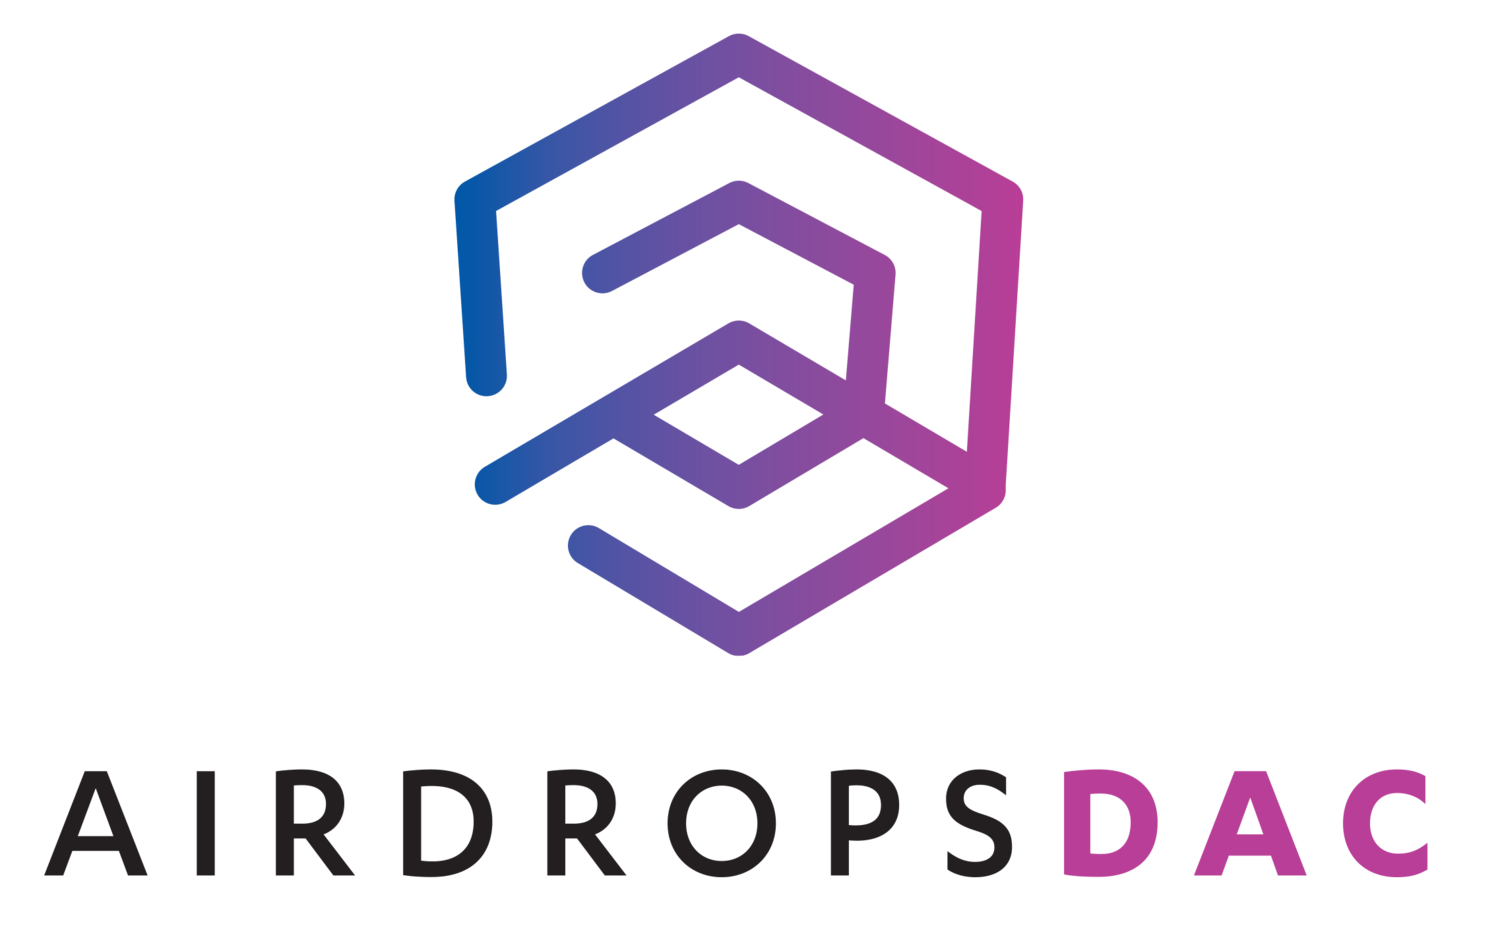 AIRDROPSDAC